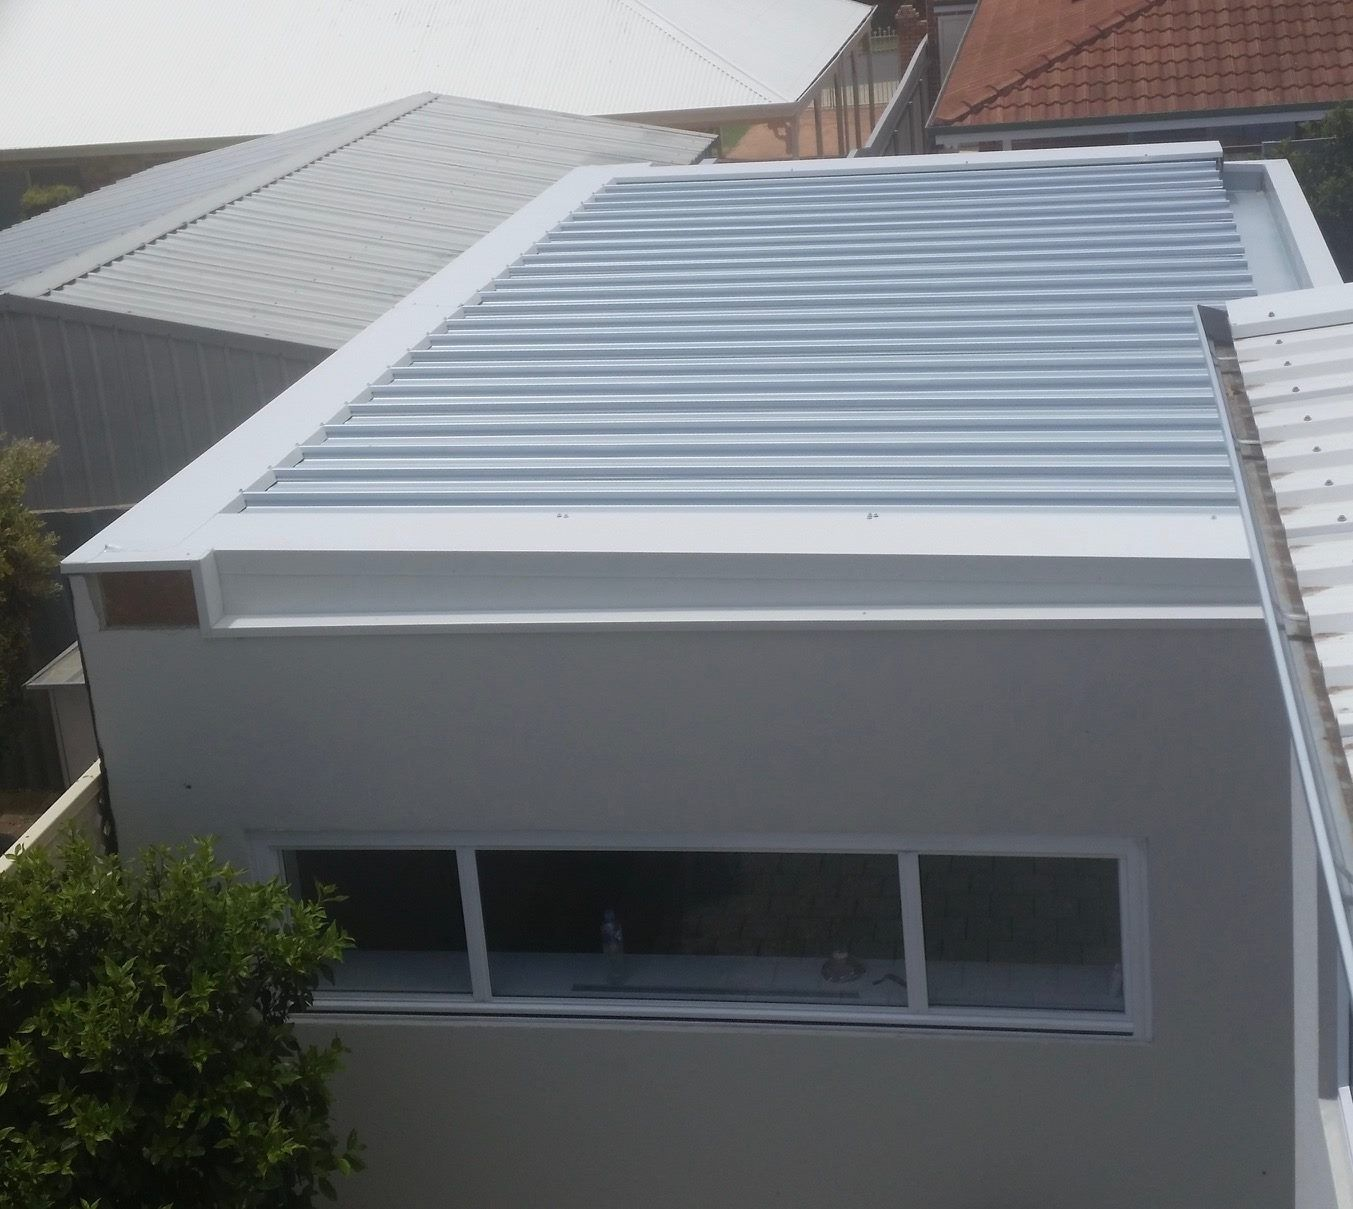 Box Gutter Clip Lock Sheets And Parapet Wall Cappings M A C Roof Plumbing Constructivo Techo